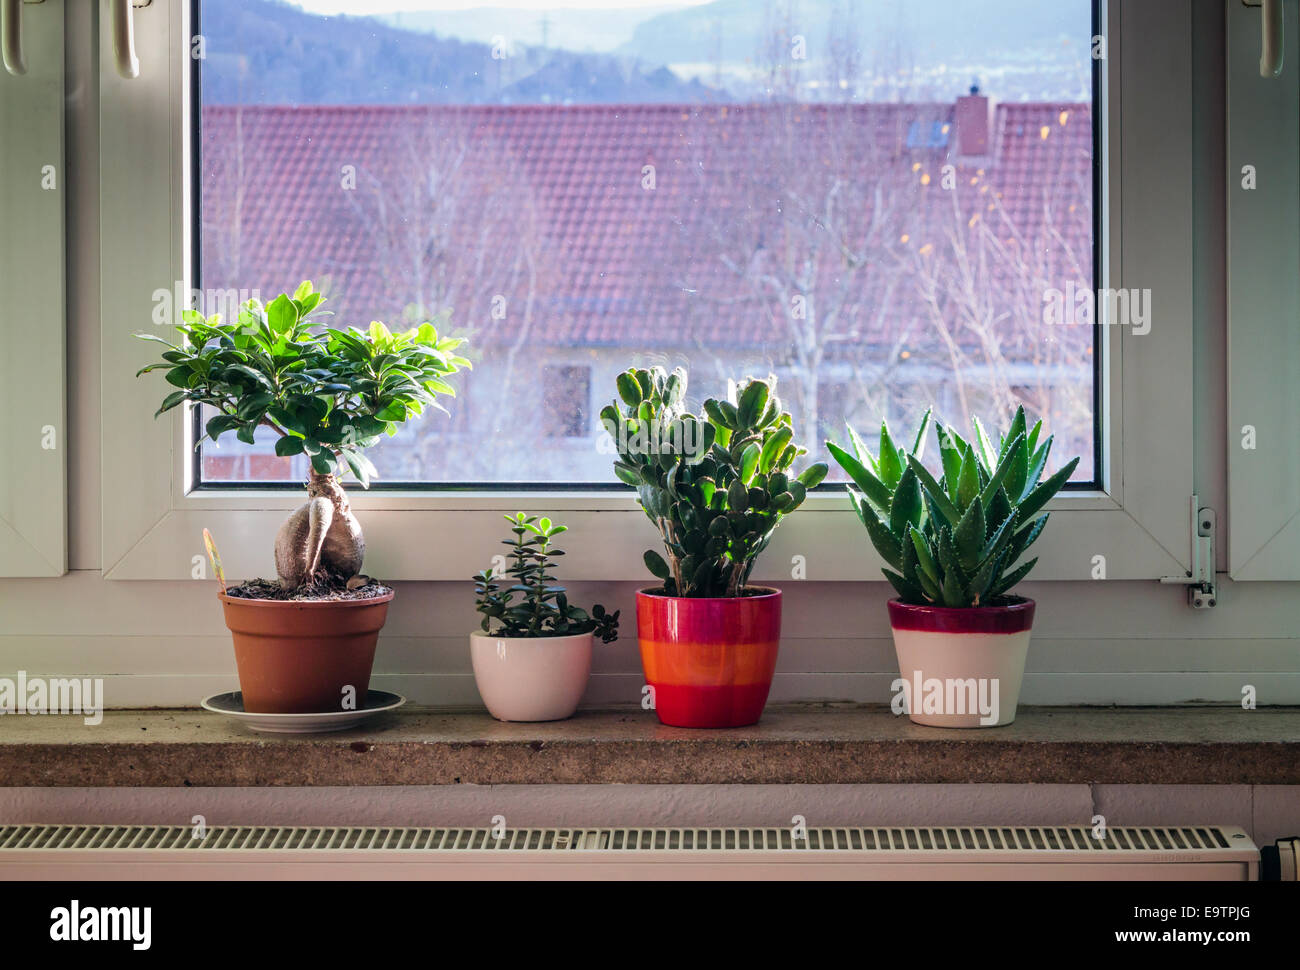 Four potted plants on a window cill - Stock Image